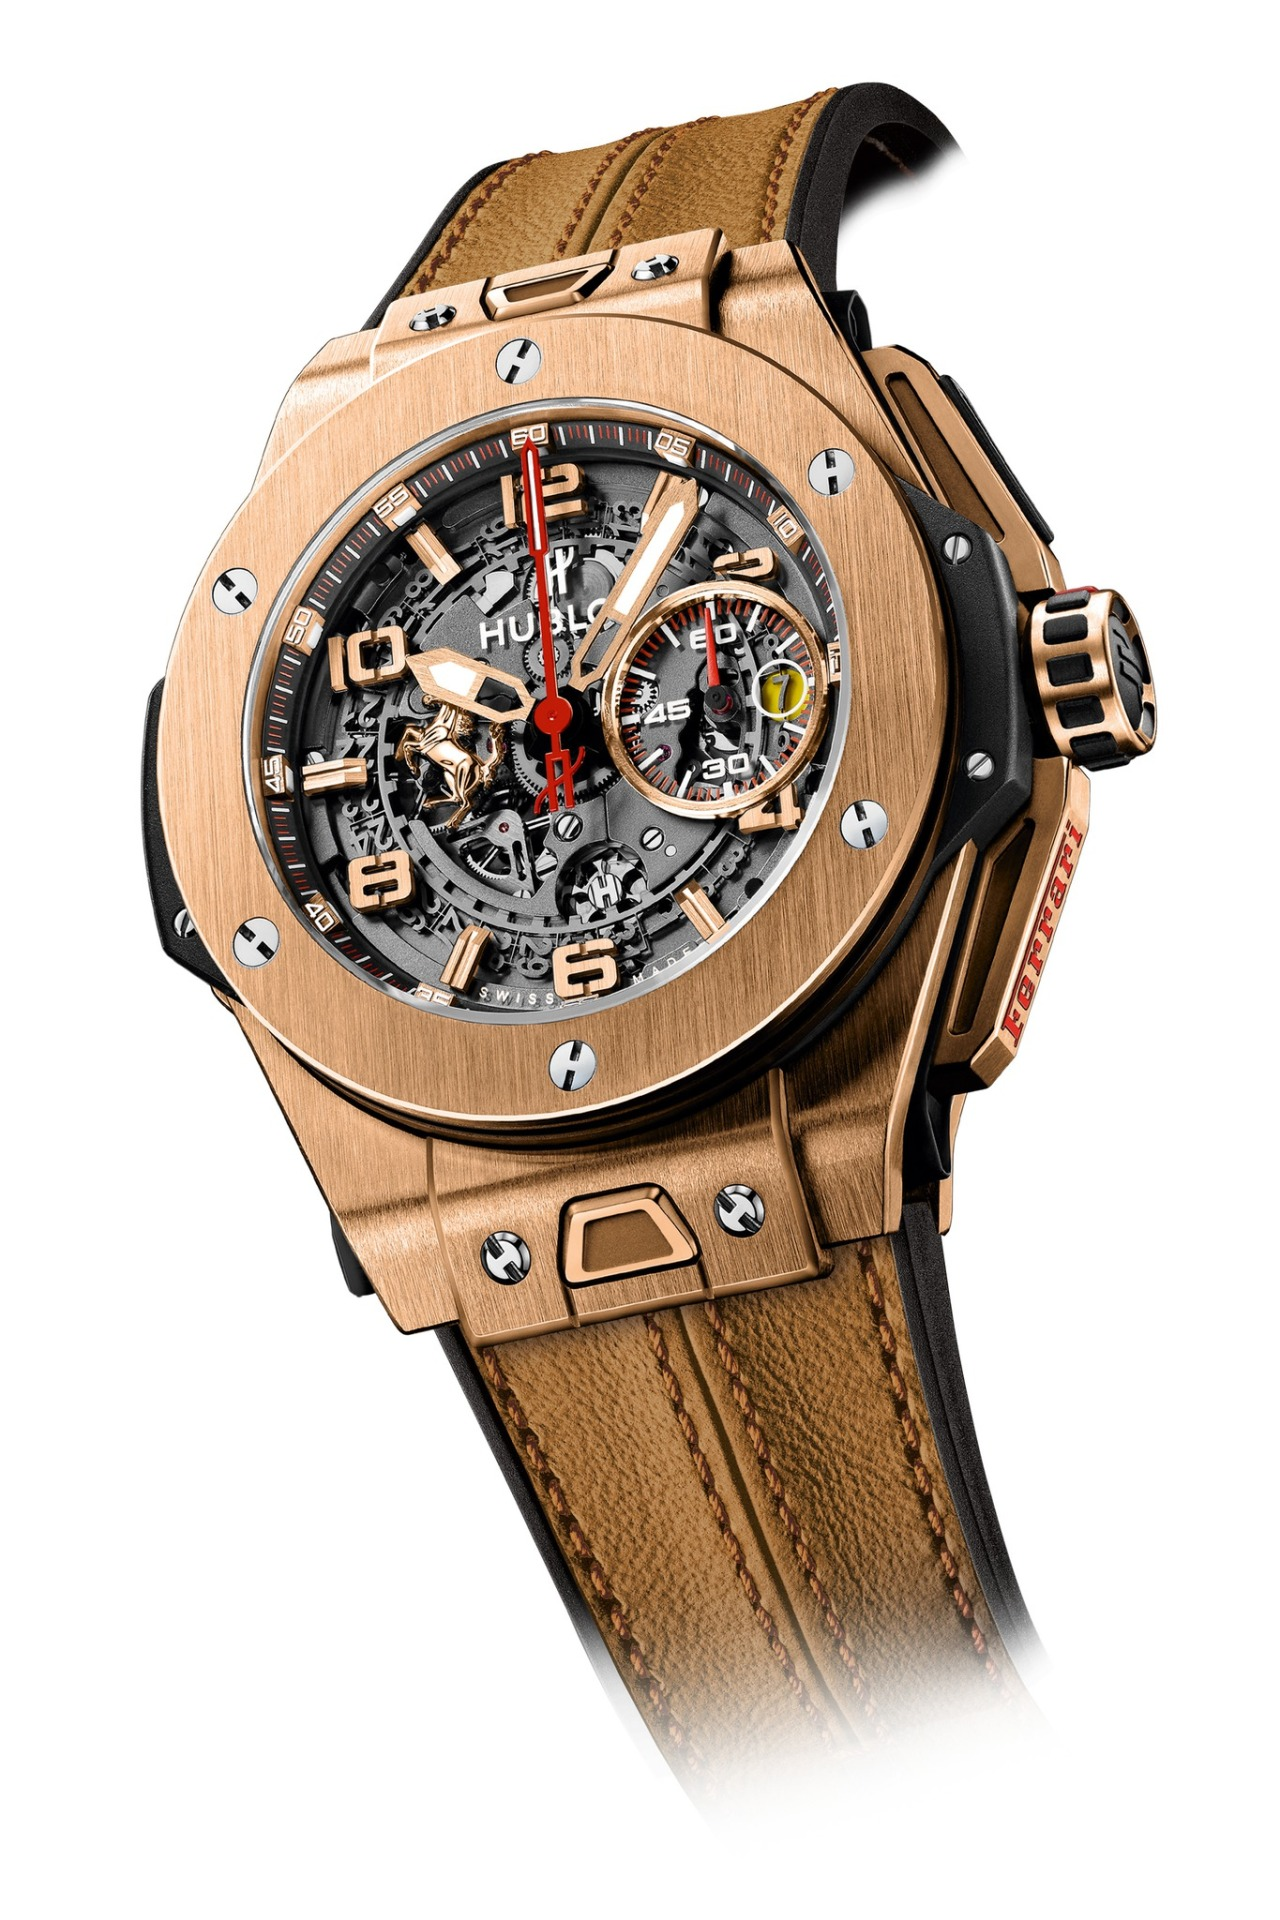 hublot%20401-ox-0123-vr%20watch1